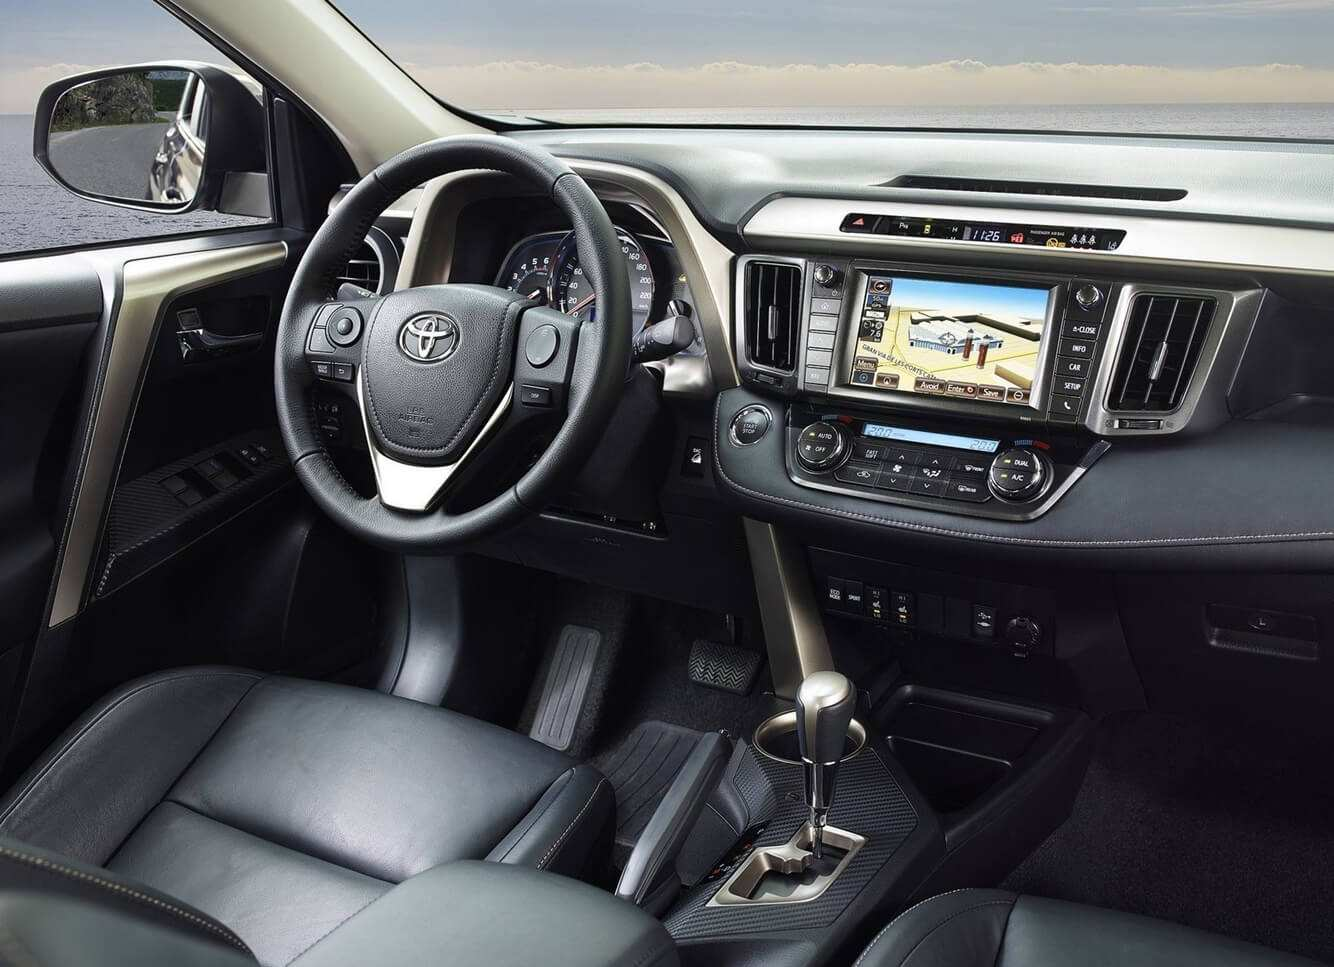 56 The Best Toyota Rav4 2020 Interior Specs And Review